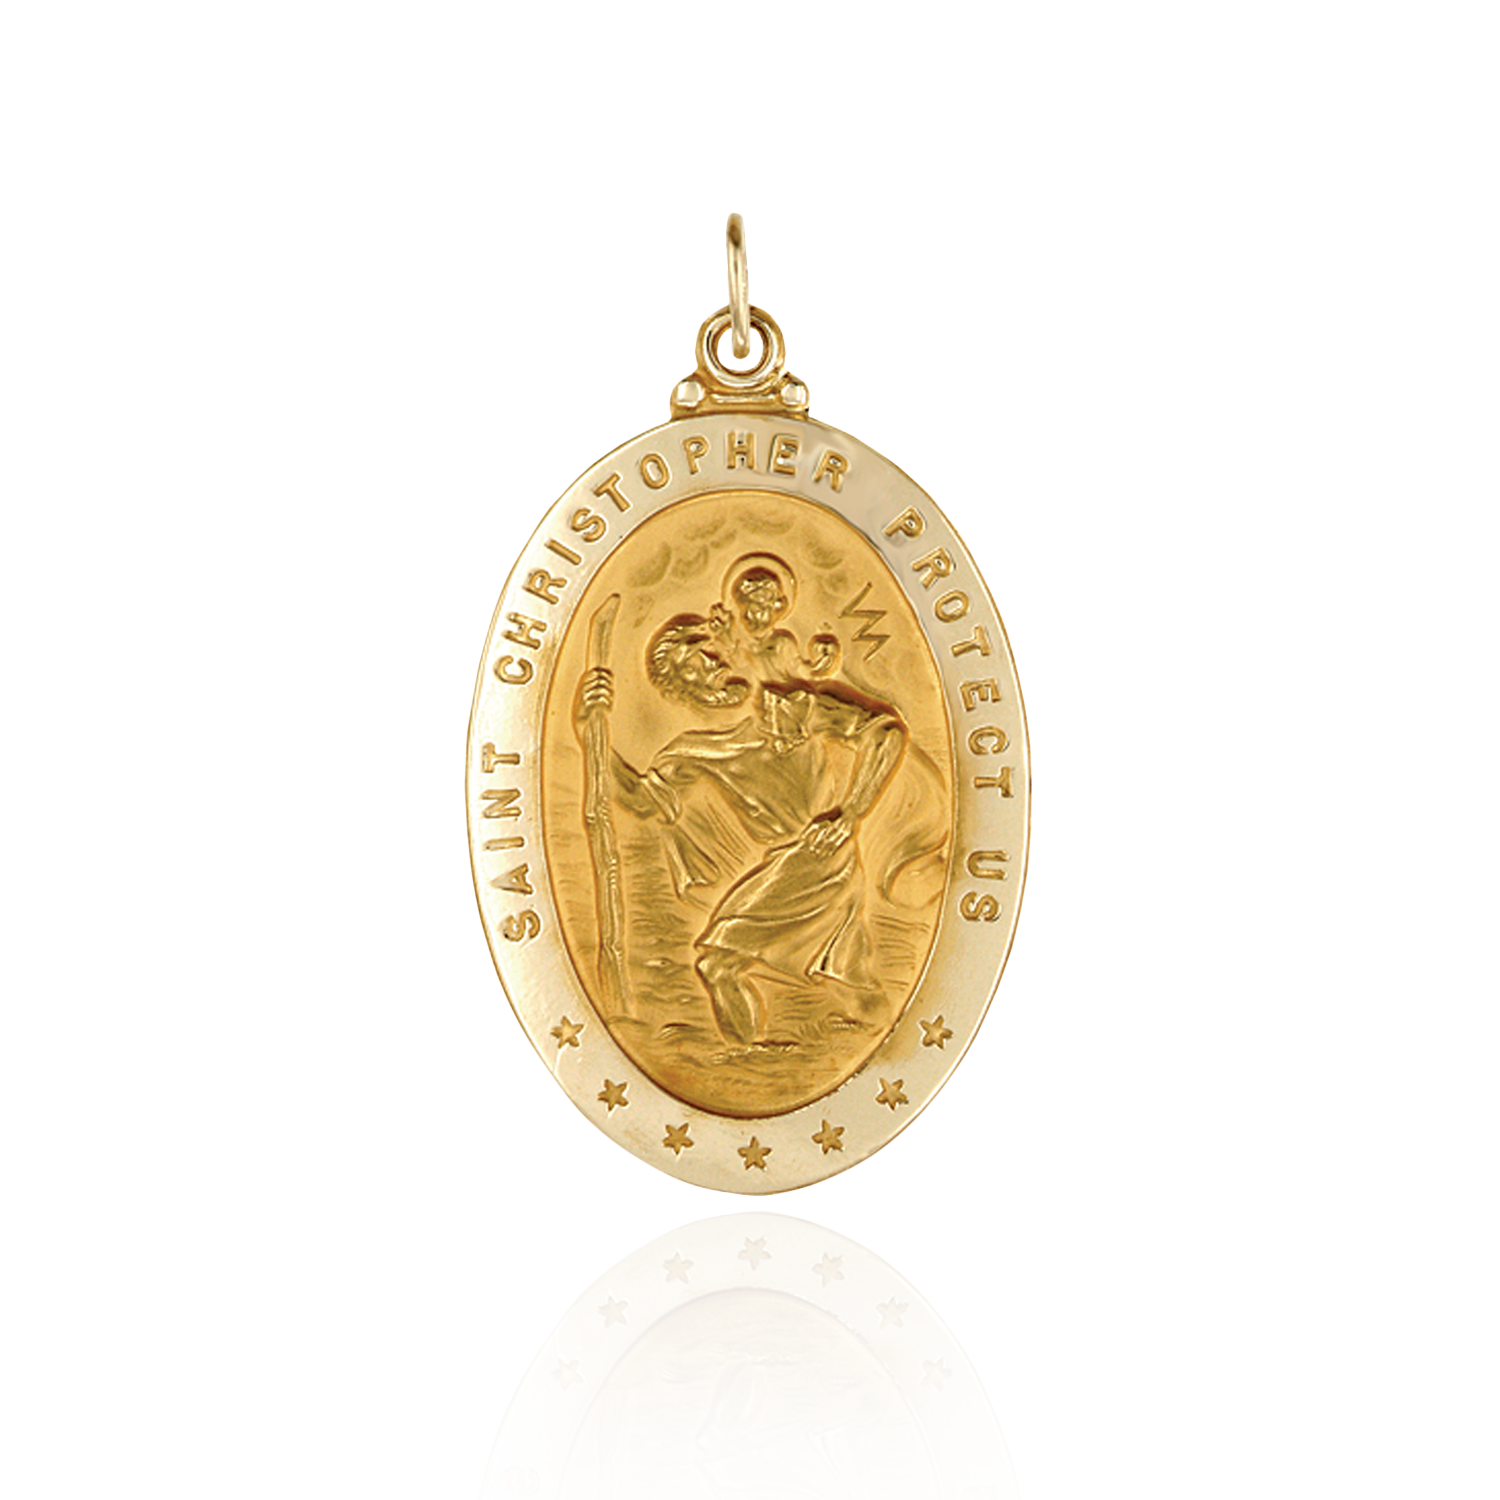 saint product pendant medal christopher merchandise medallion service